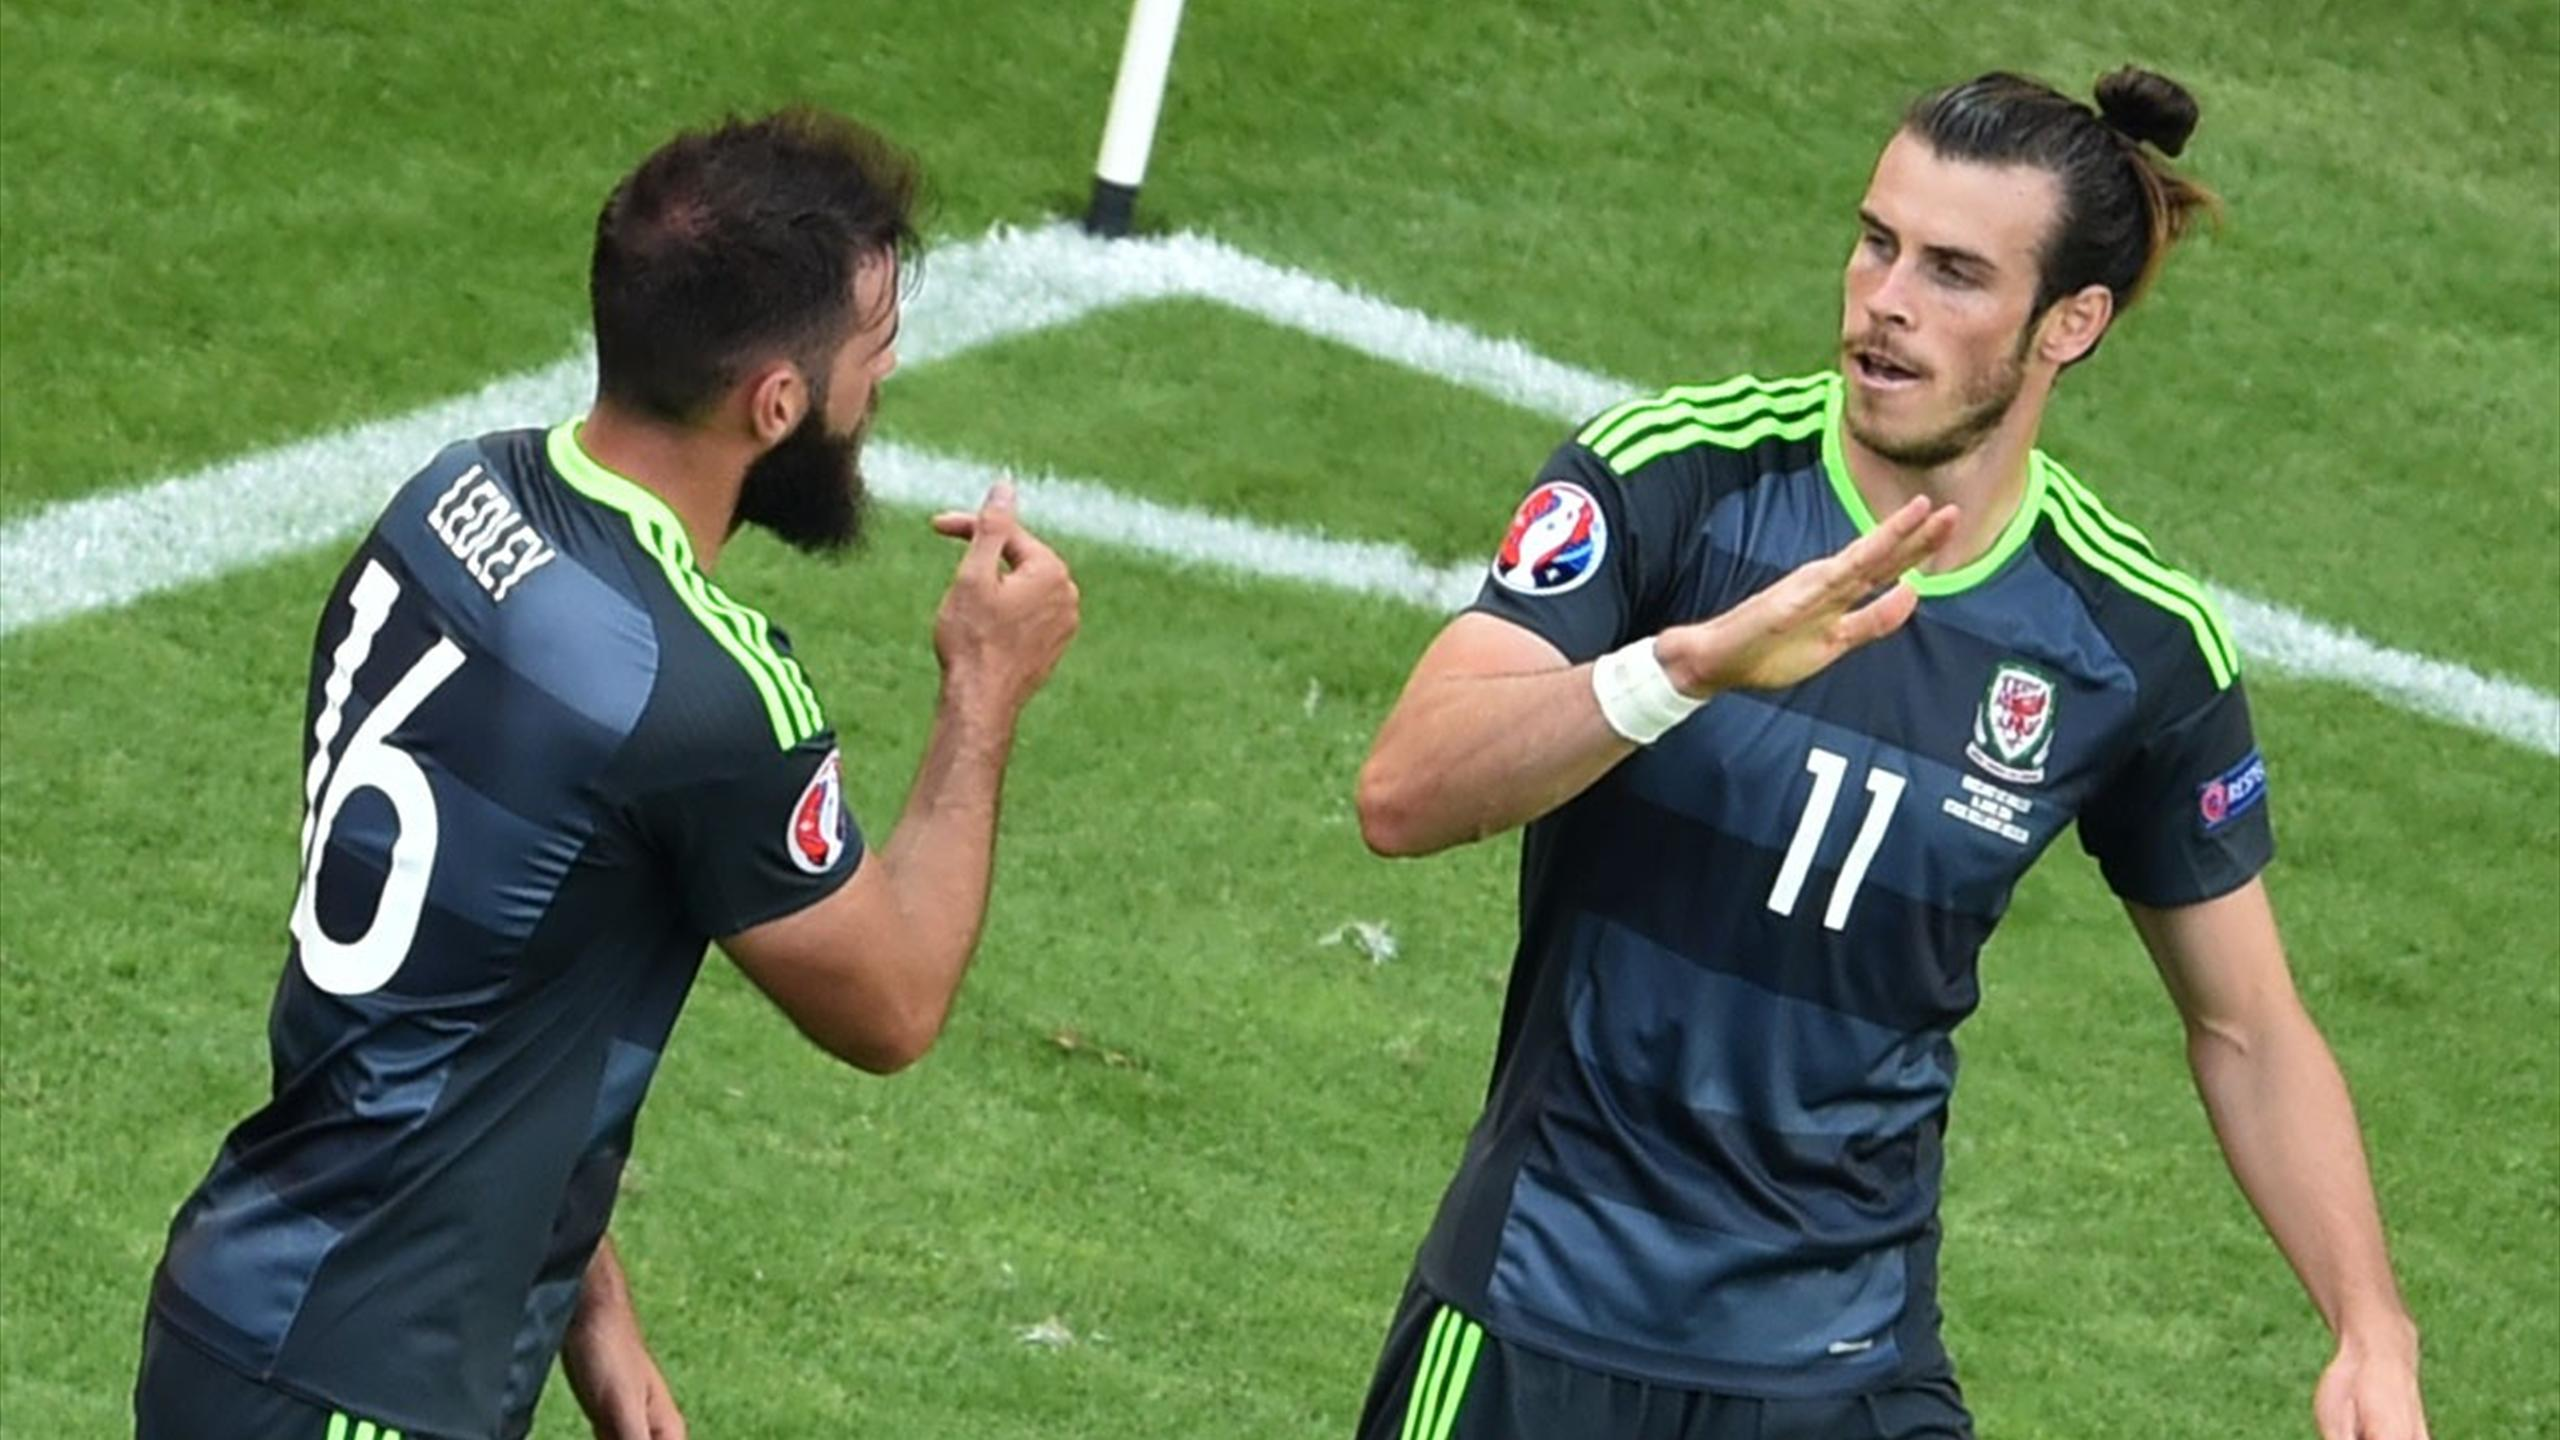 Wales' forward Gareth Bale (R) celebrates with Wales' midfielder Joe Ledley